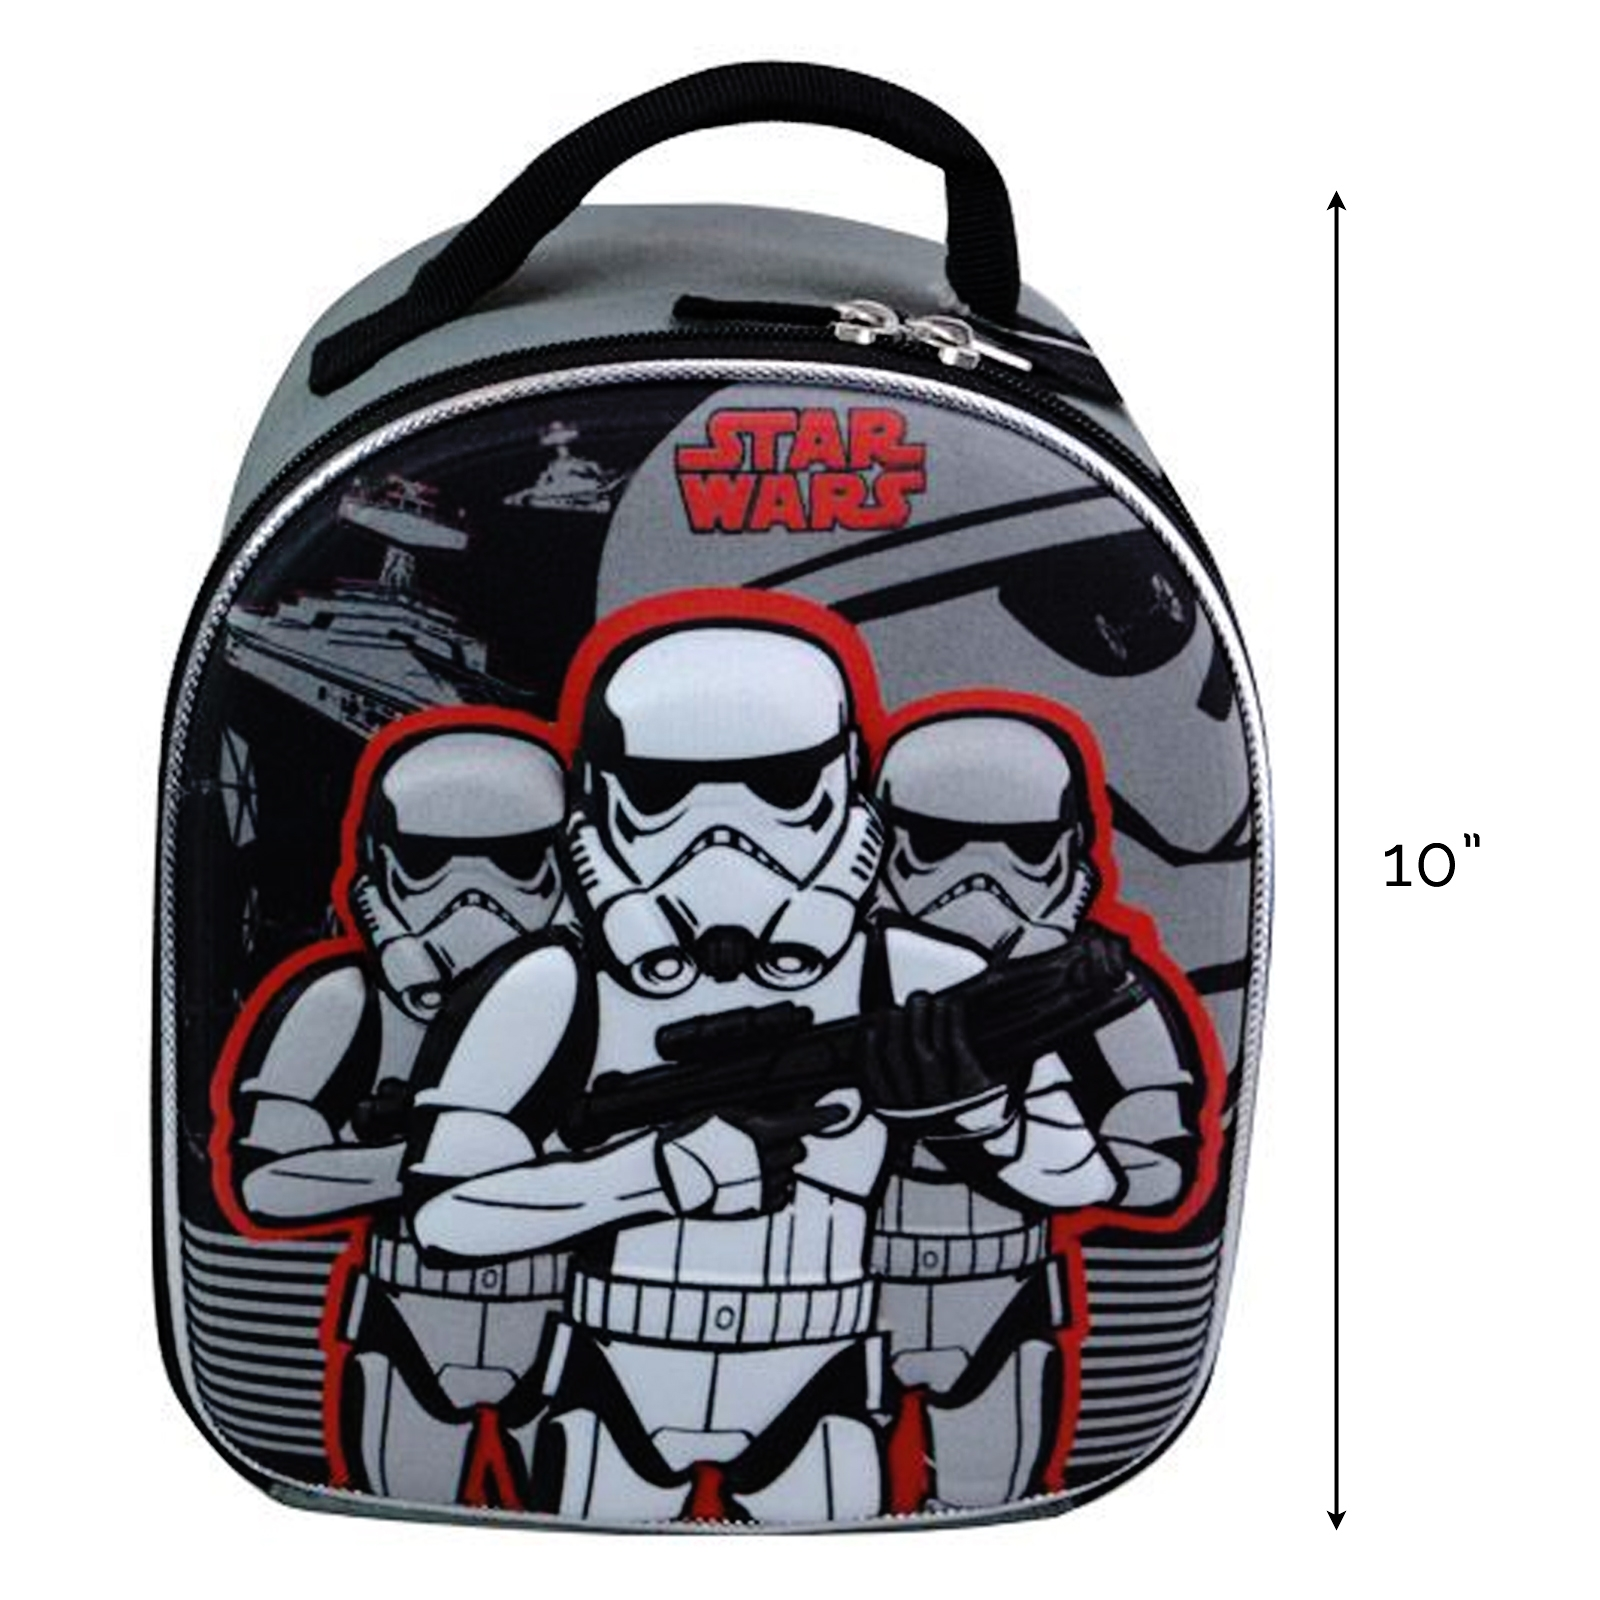 Star Wars Stormtrooper Backpack Kids and Boys Red and Gray Theme New Movie Episode 7 Christmas Gift Idea